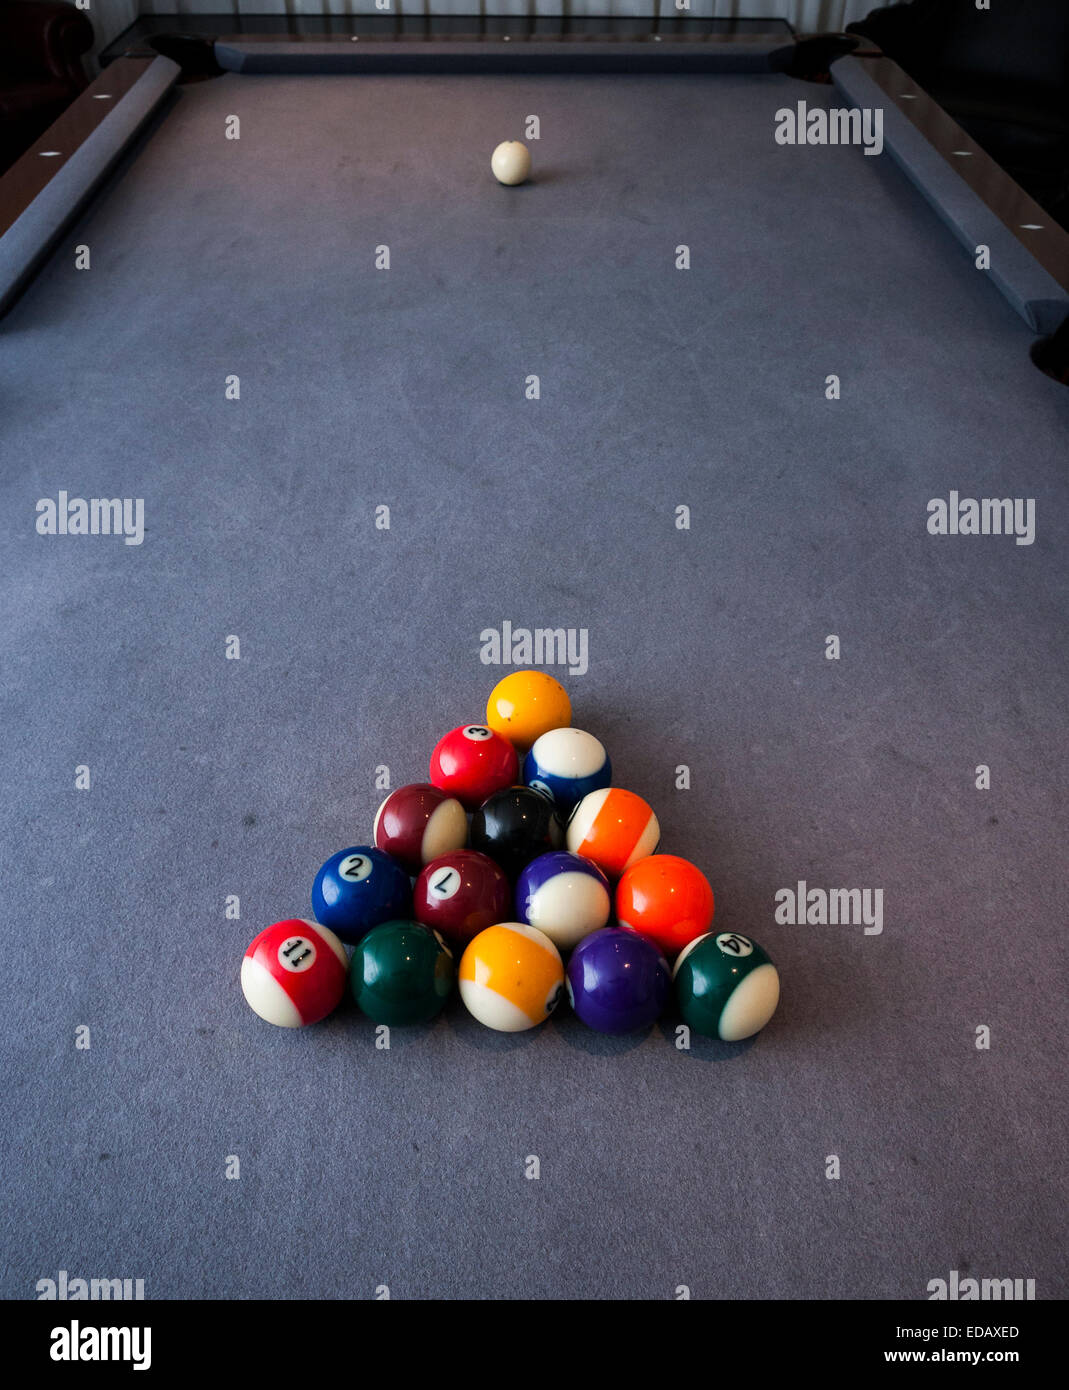 Pool Table Setup >> Pool Table Setup Stock Photo 77072309 Alamy